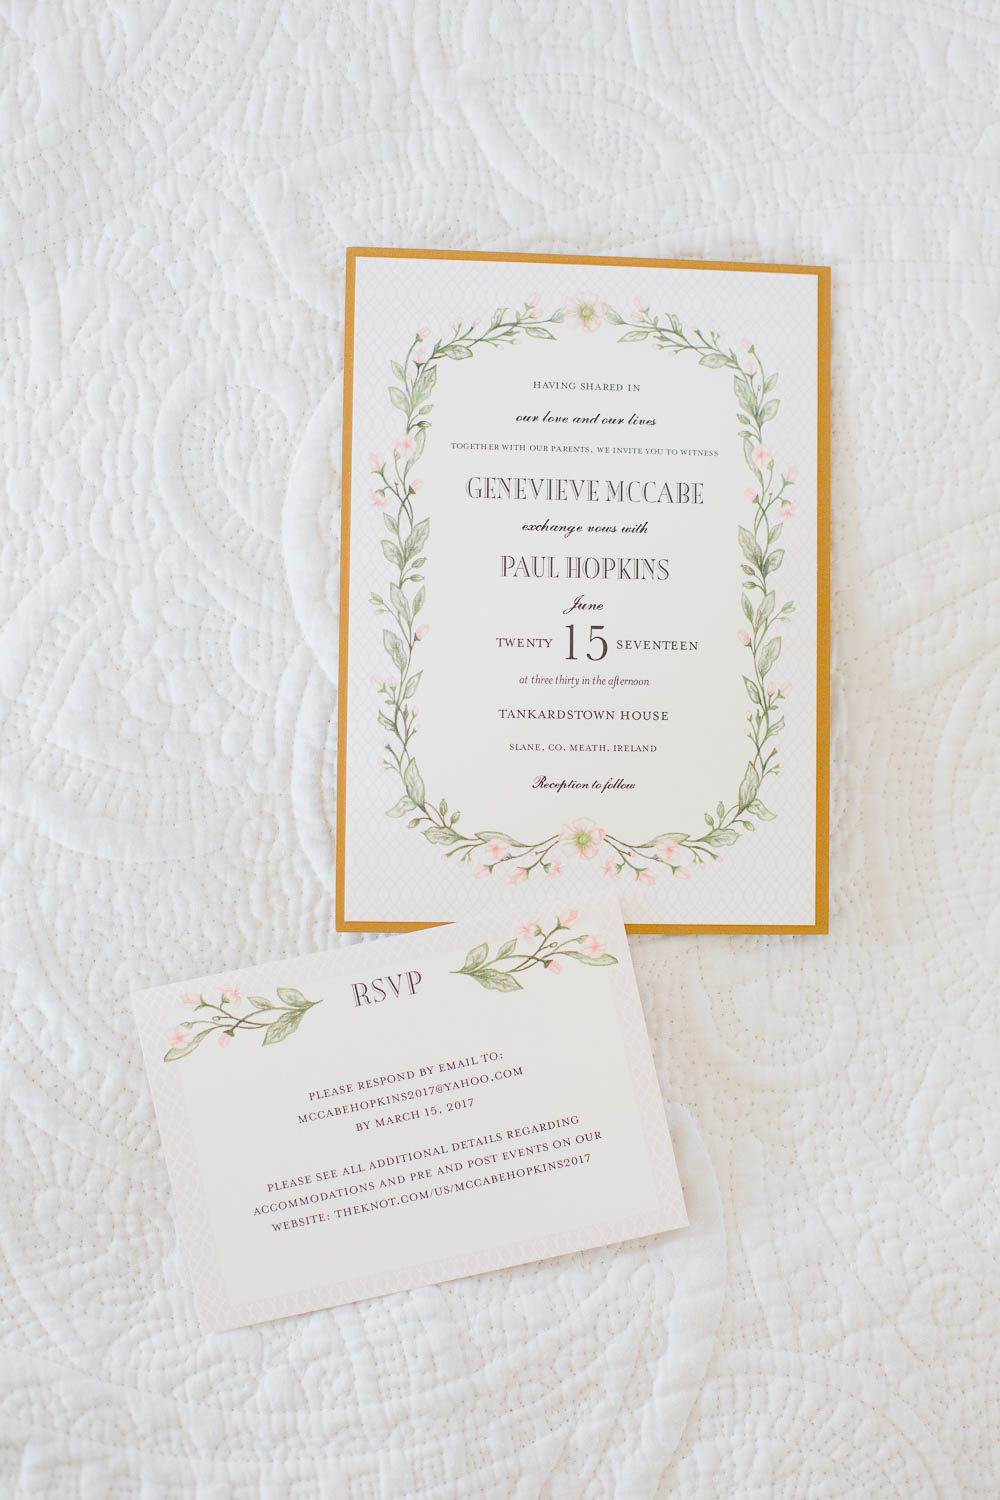 Tankardstown House Wedding Invitations